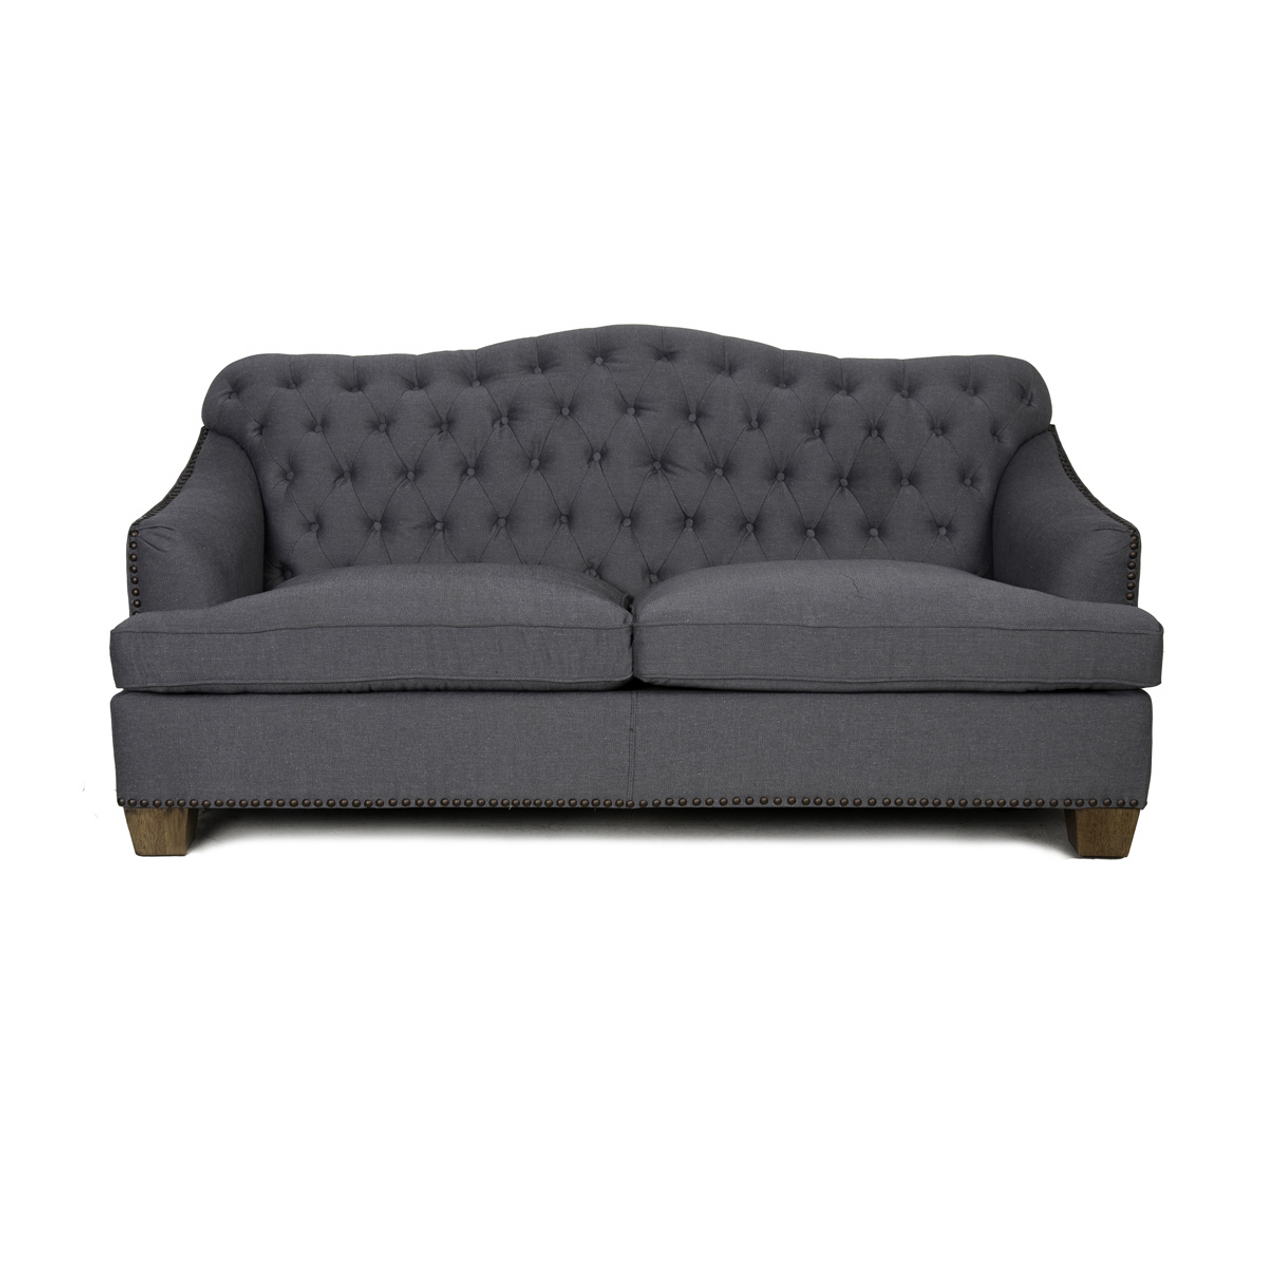 Genial Bardot Tufted Sofa With Nailheads   Charcoal